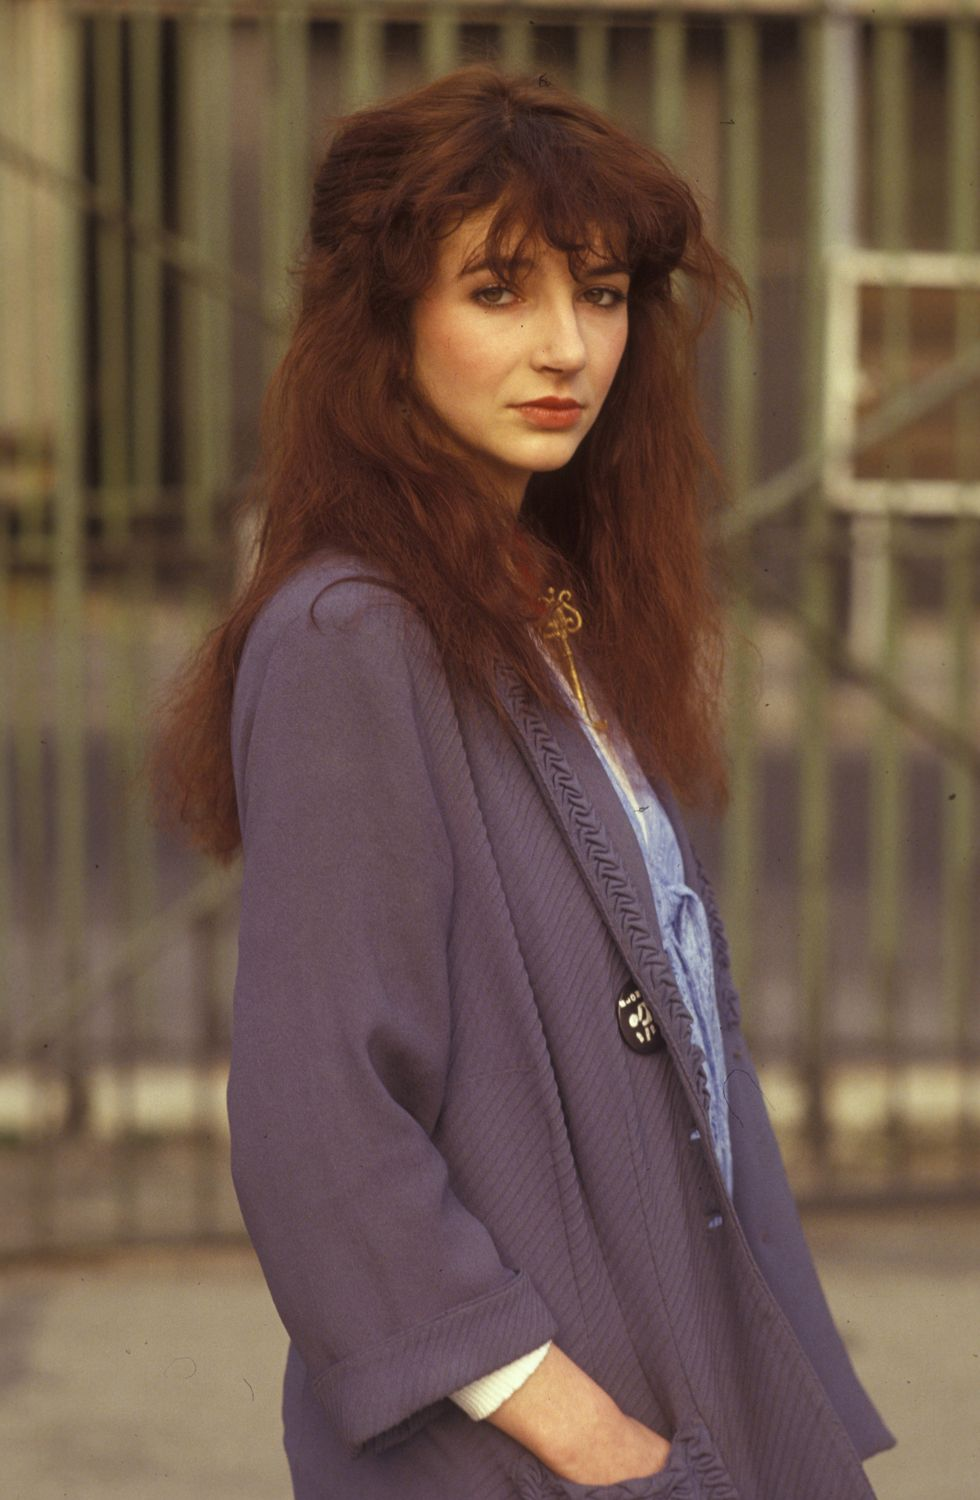 Rare Scans and Photo Thread in Kate Bush General Discussion Forum. Kate Bush - 1970s *-*